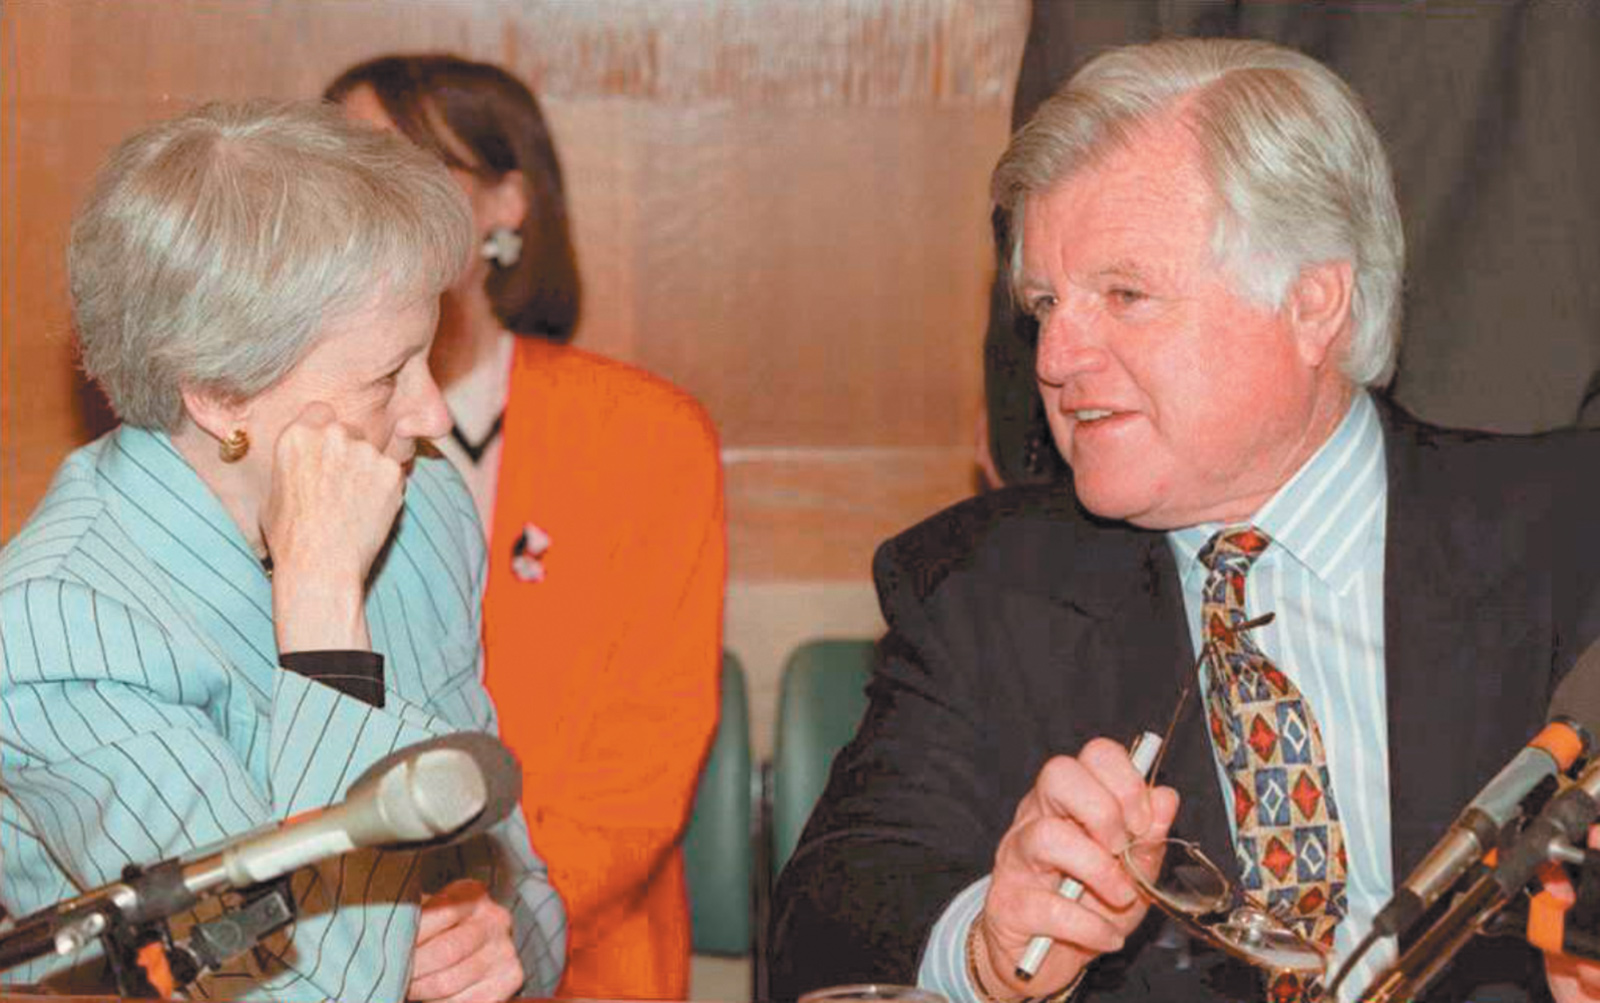 Ted Kennedy with Republican senator Nancy Kassebaum of Kansas at a meeting of the Senate Labor and Human Resources Committee, Washington, D.C., May 1995